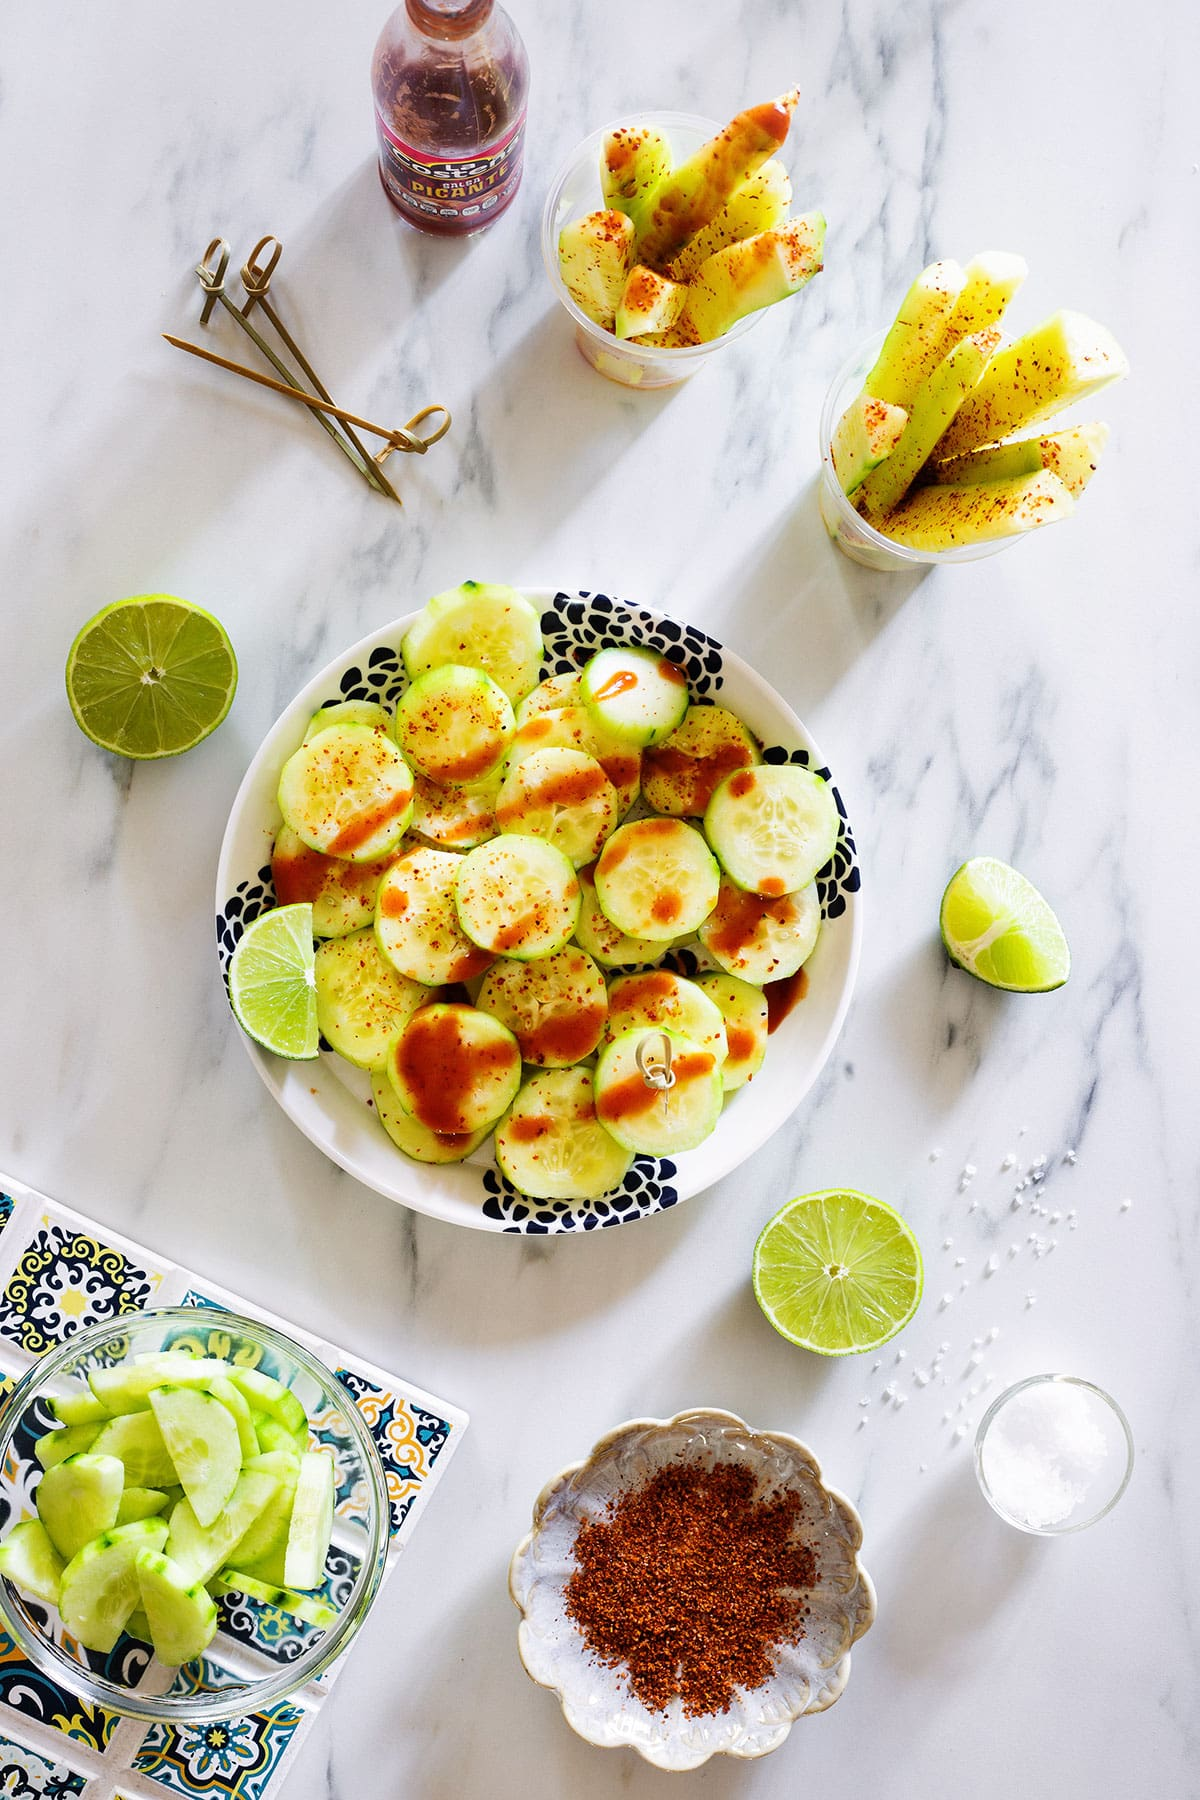 A plate and some cups with Mexican cucumber snack.